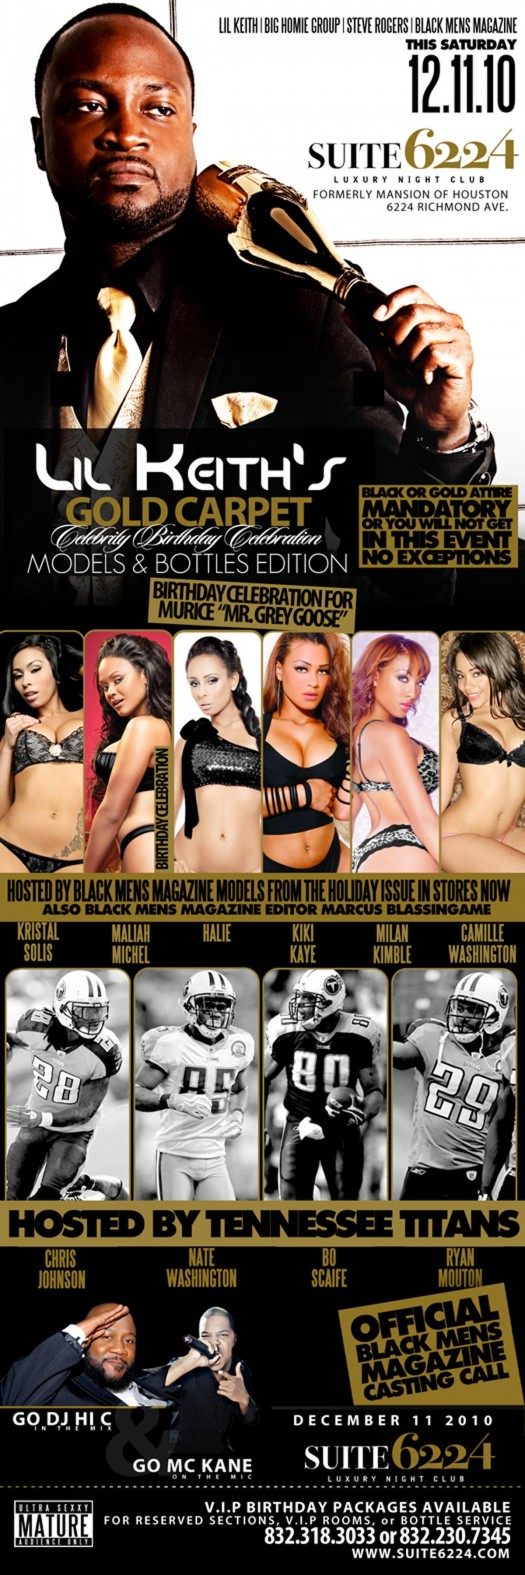 Lil Keith B-Day Party Dec 11th in Houston with Maliah Michel, Kristal Solis, Halie and more